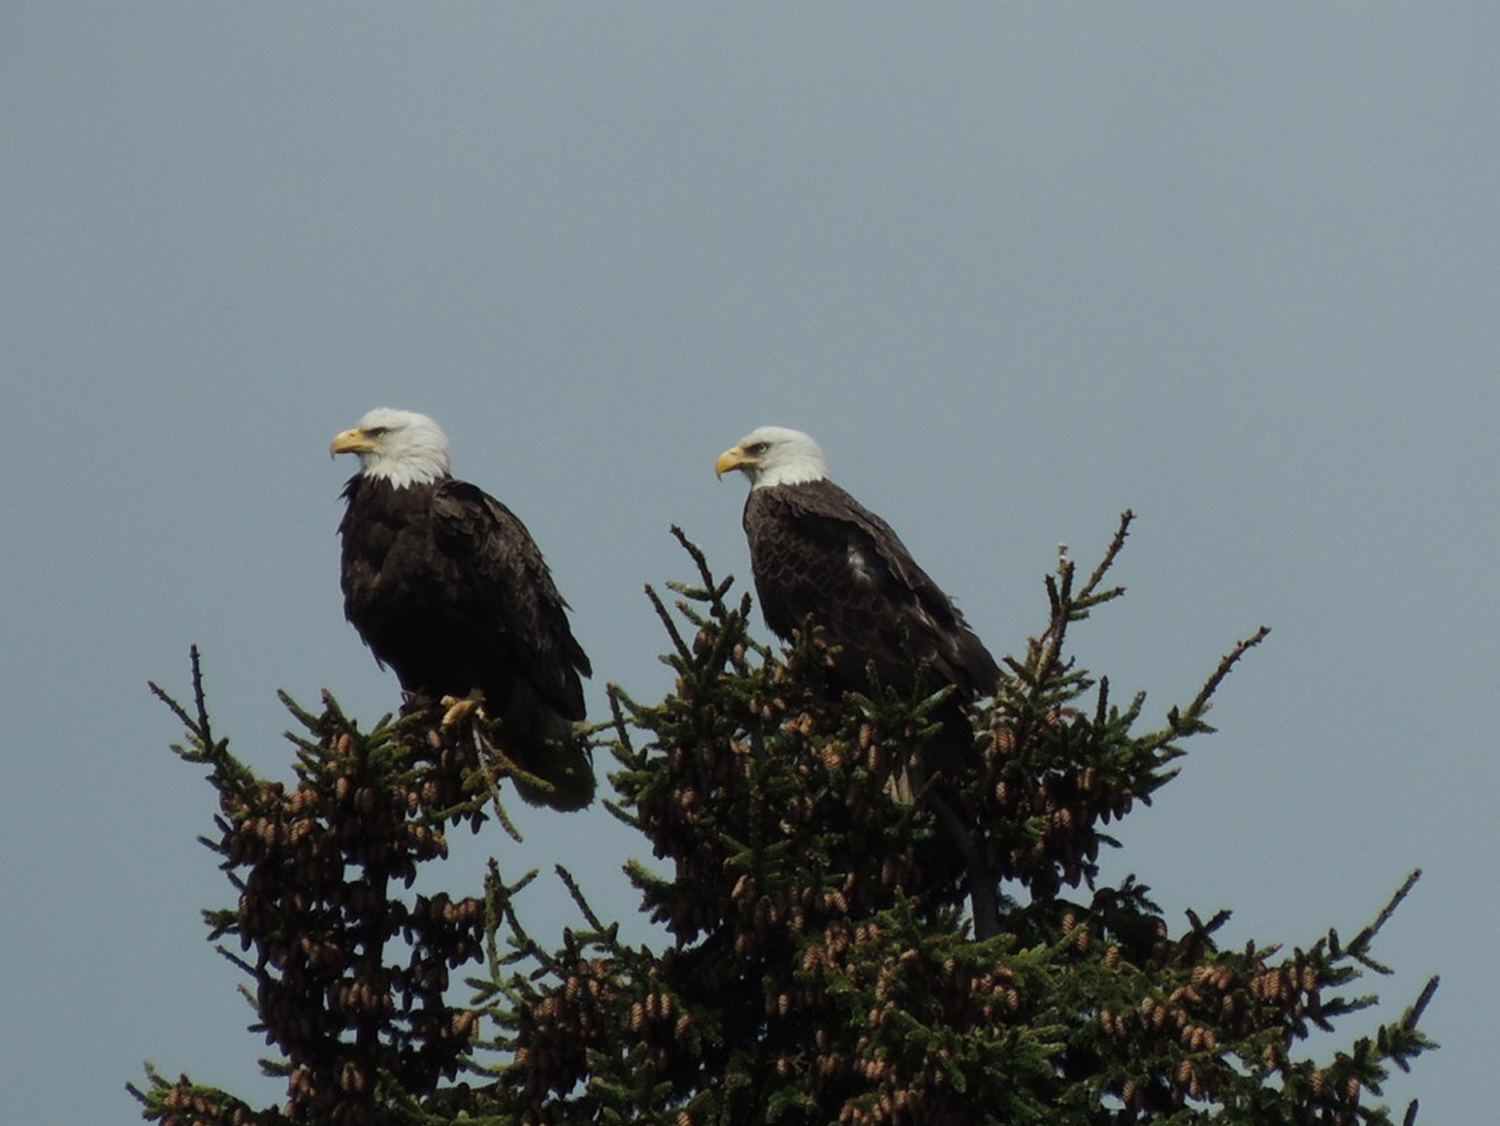 Standing watch over Casco Bay, a pair of bald eagles protect their two youngsters hidden in the nest, and peruse the area for anything small and edible while Nick Knight watched from below.